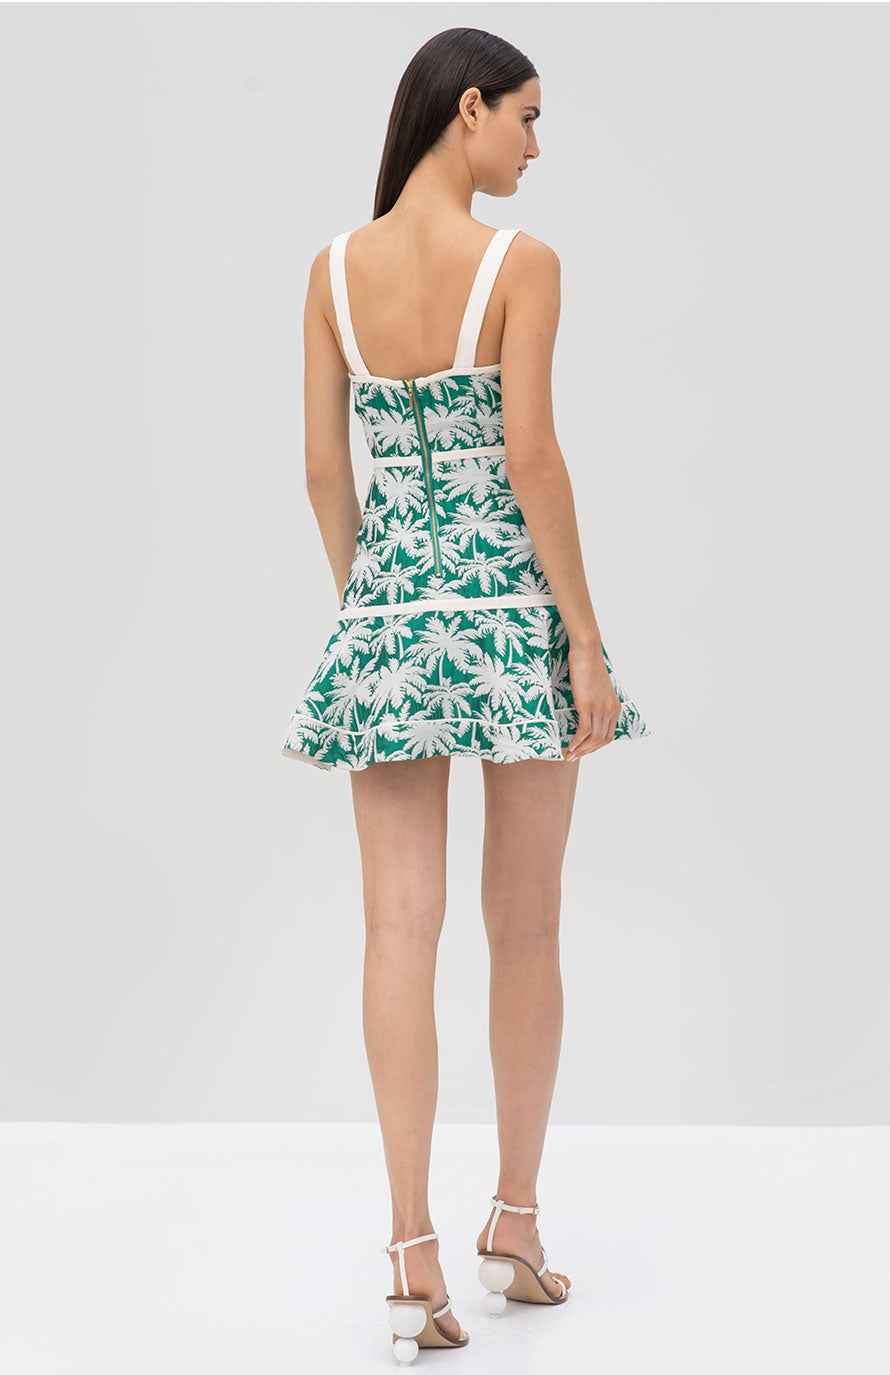 Alexis Lisel Dress in Green Palm Jacquard - Rear View